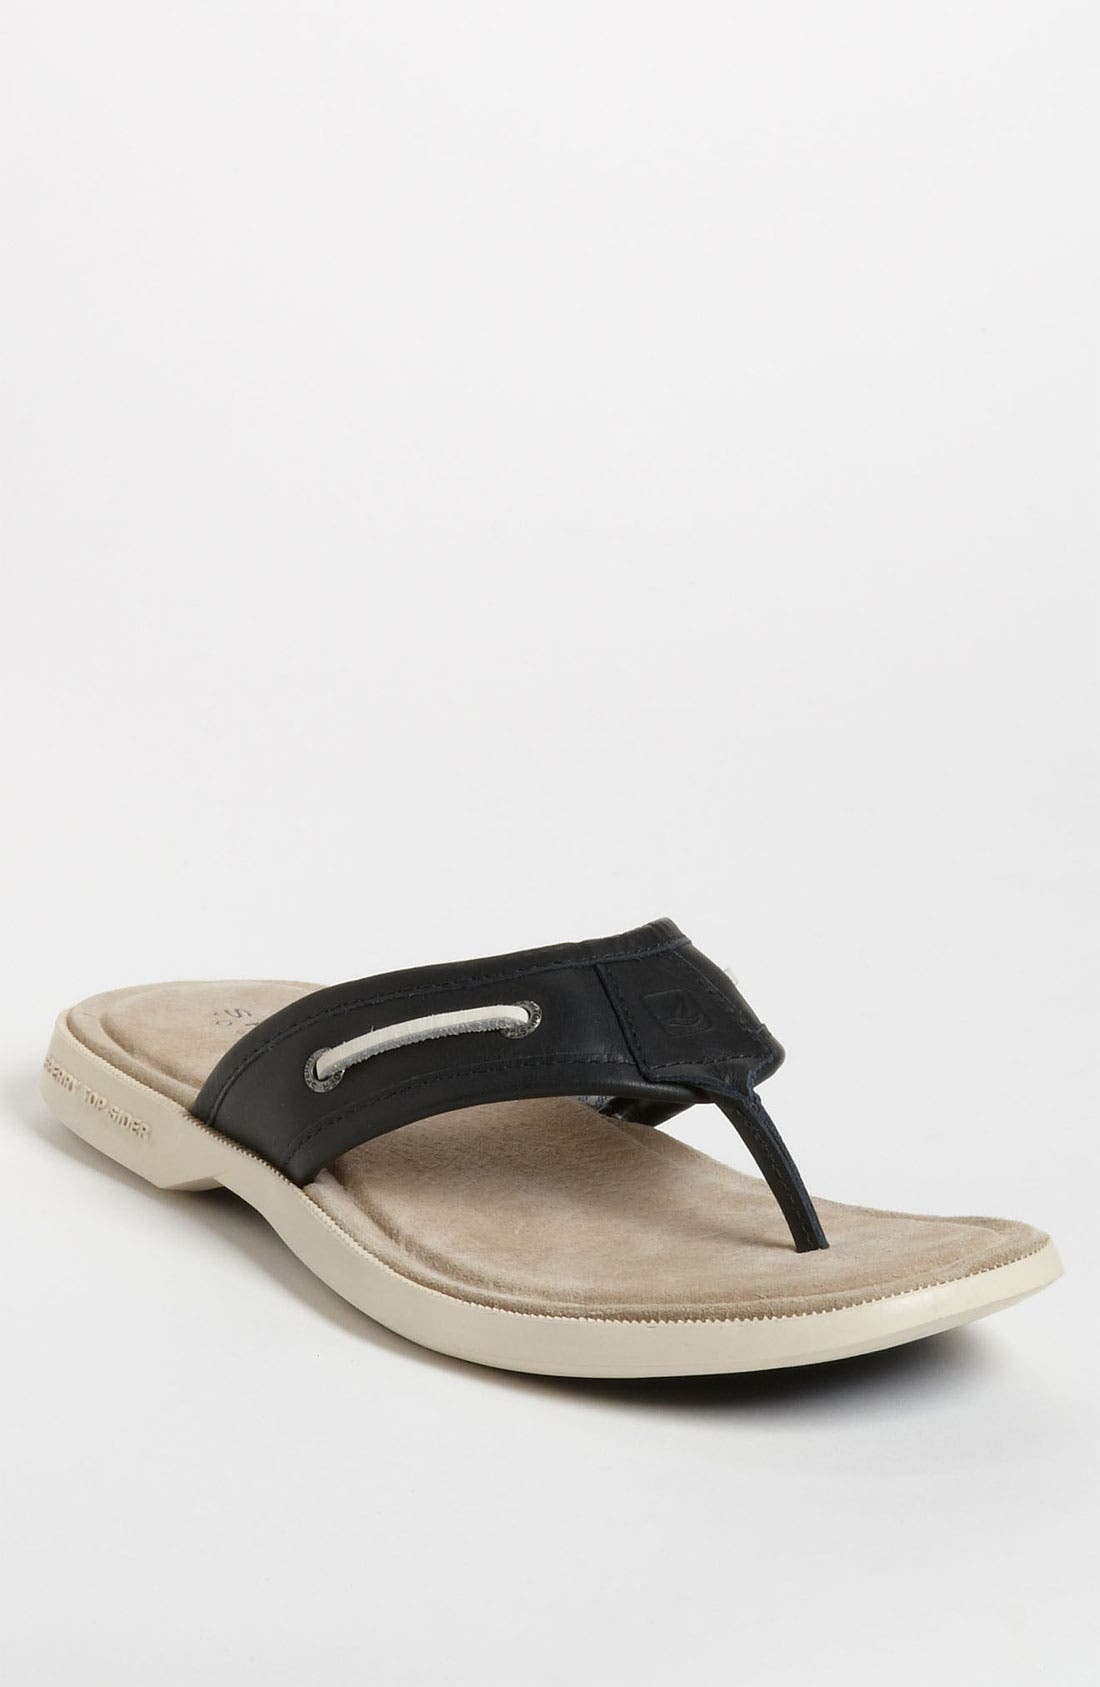 Alternate Image 1 Selected - Sperry Top-Sider® 'Sahara' Leather Sandal